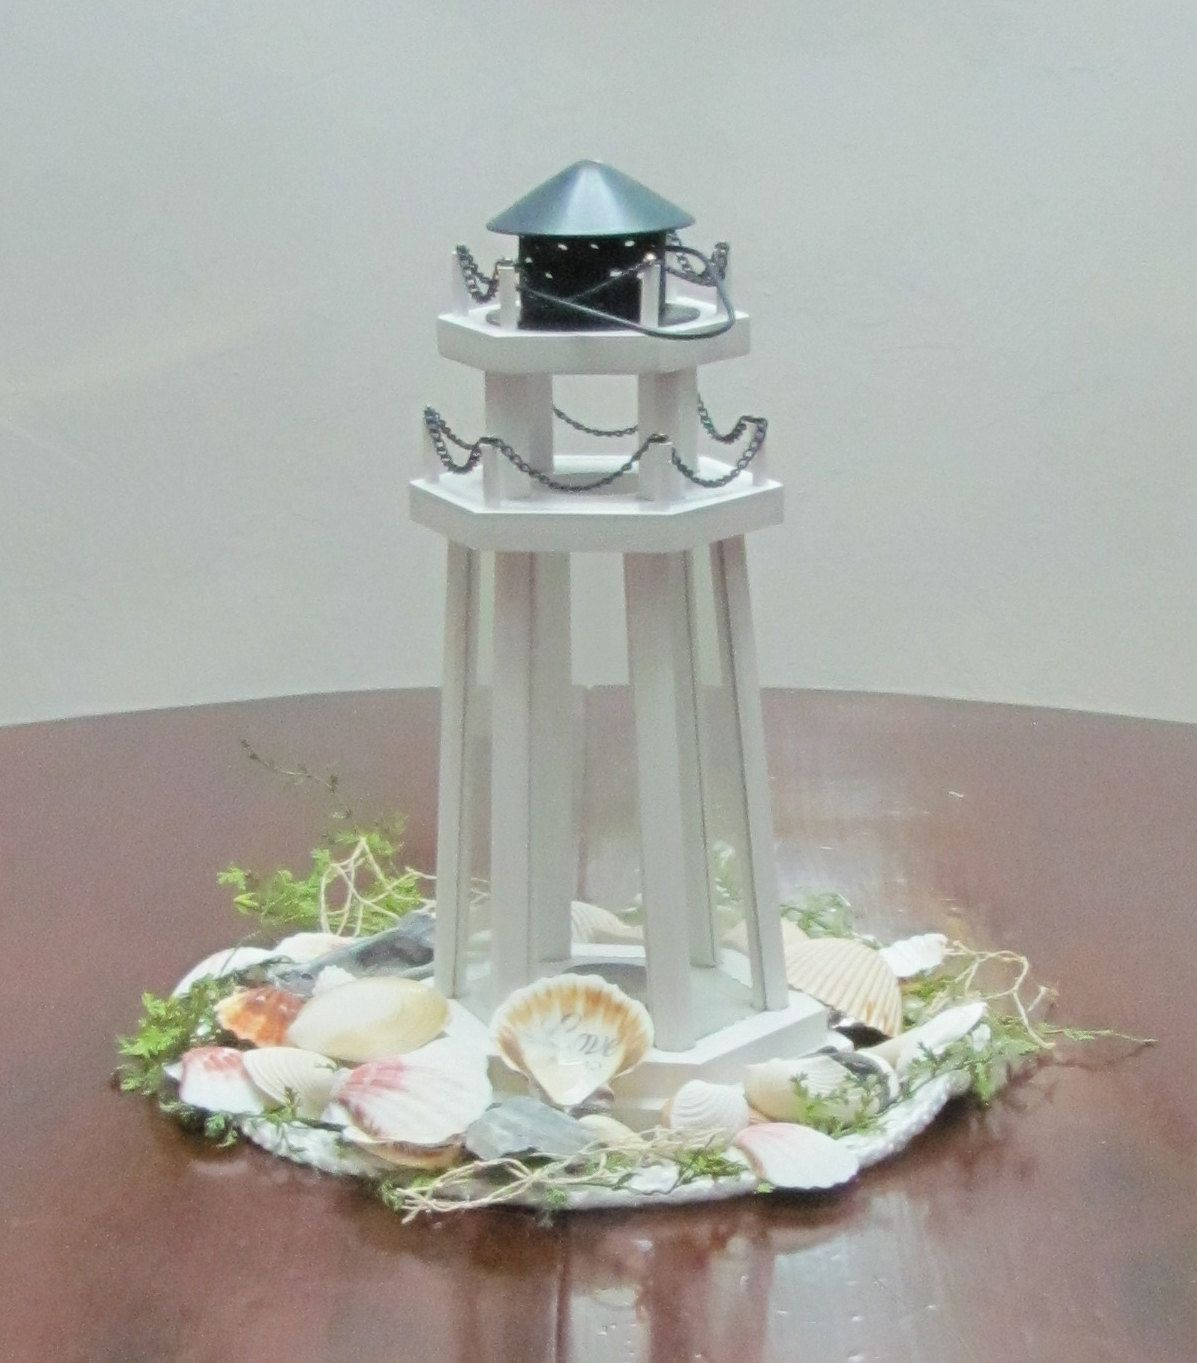 High Quality Lighthouse Centerpieces Wedding Event Decor Lighthouse Lantern Centerpiece  For Reception Tables And Nautical Home Decor By